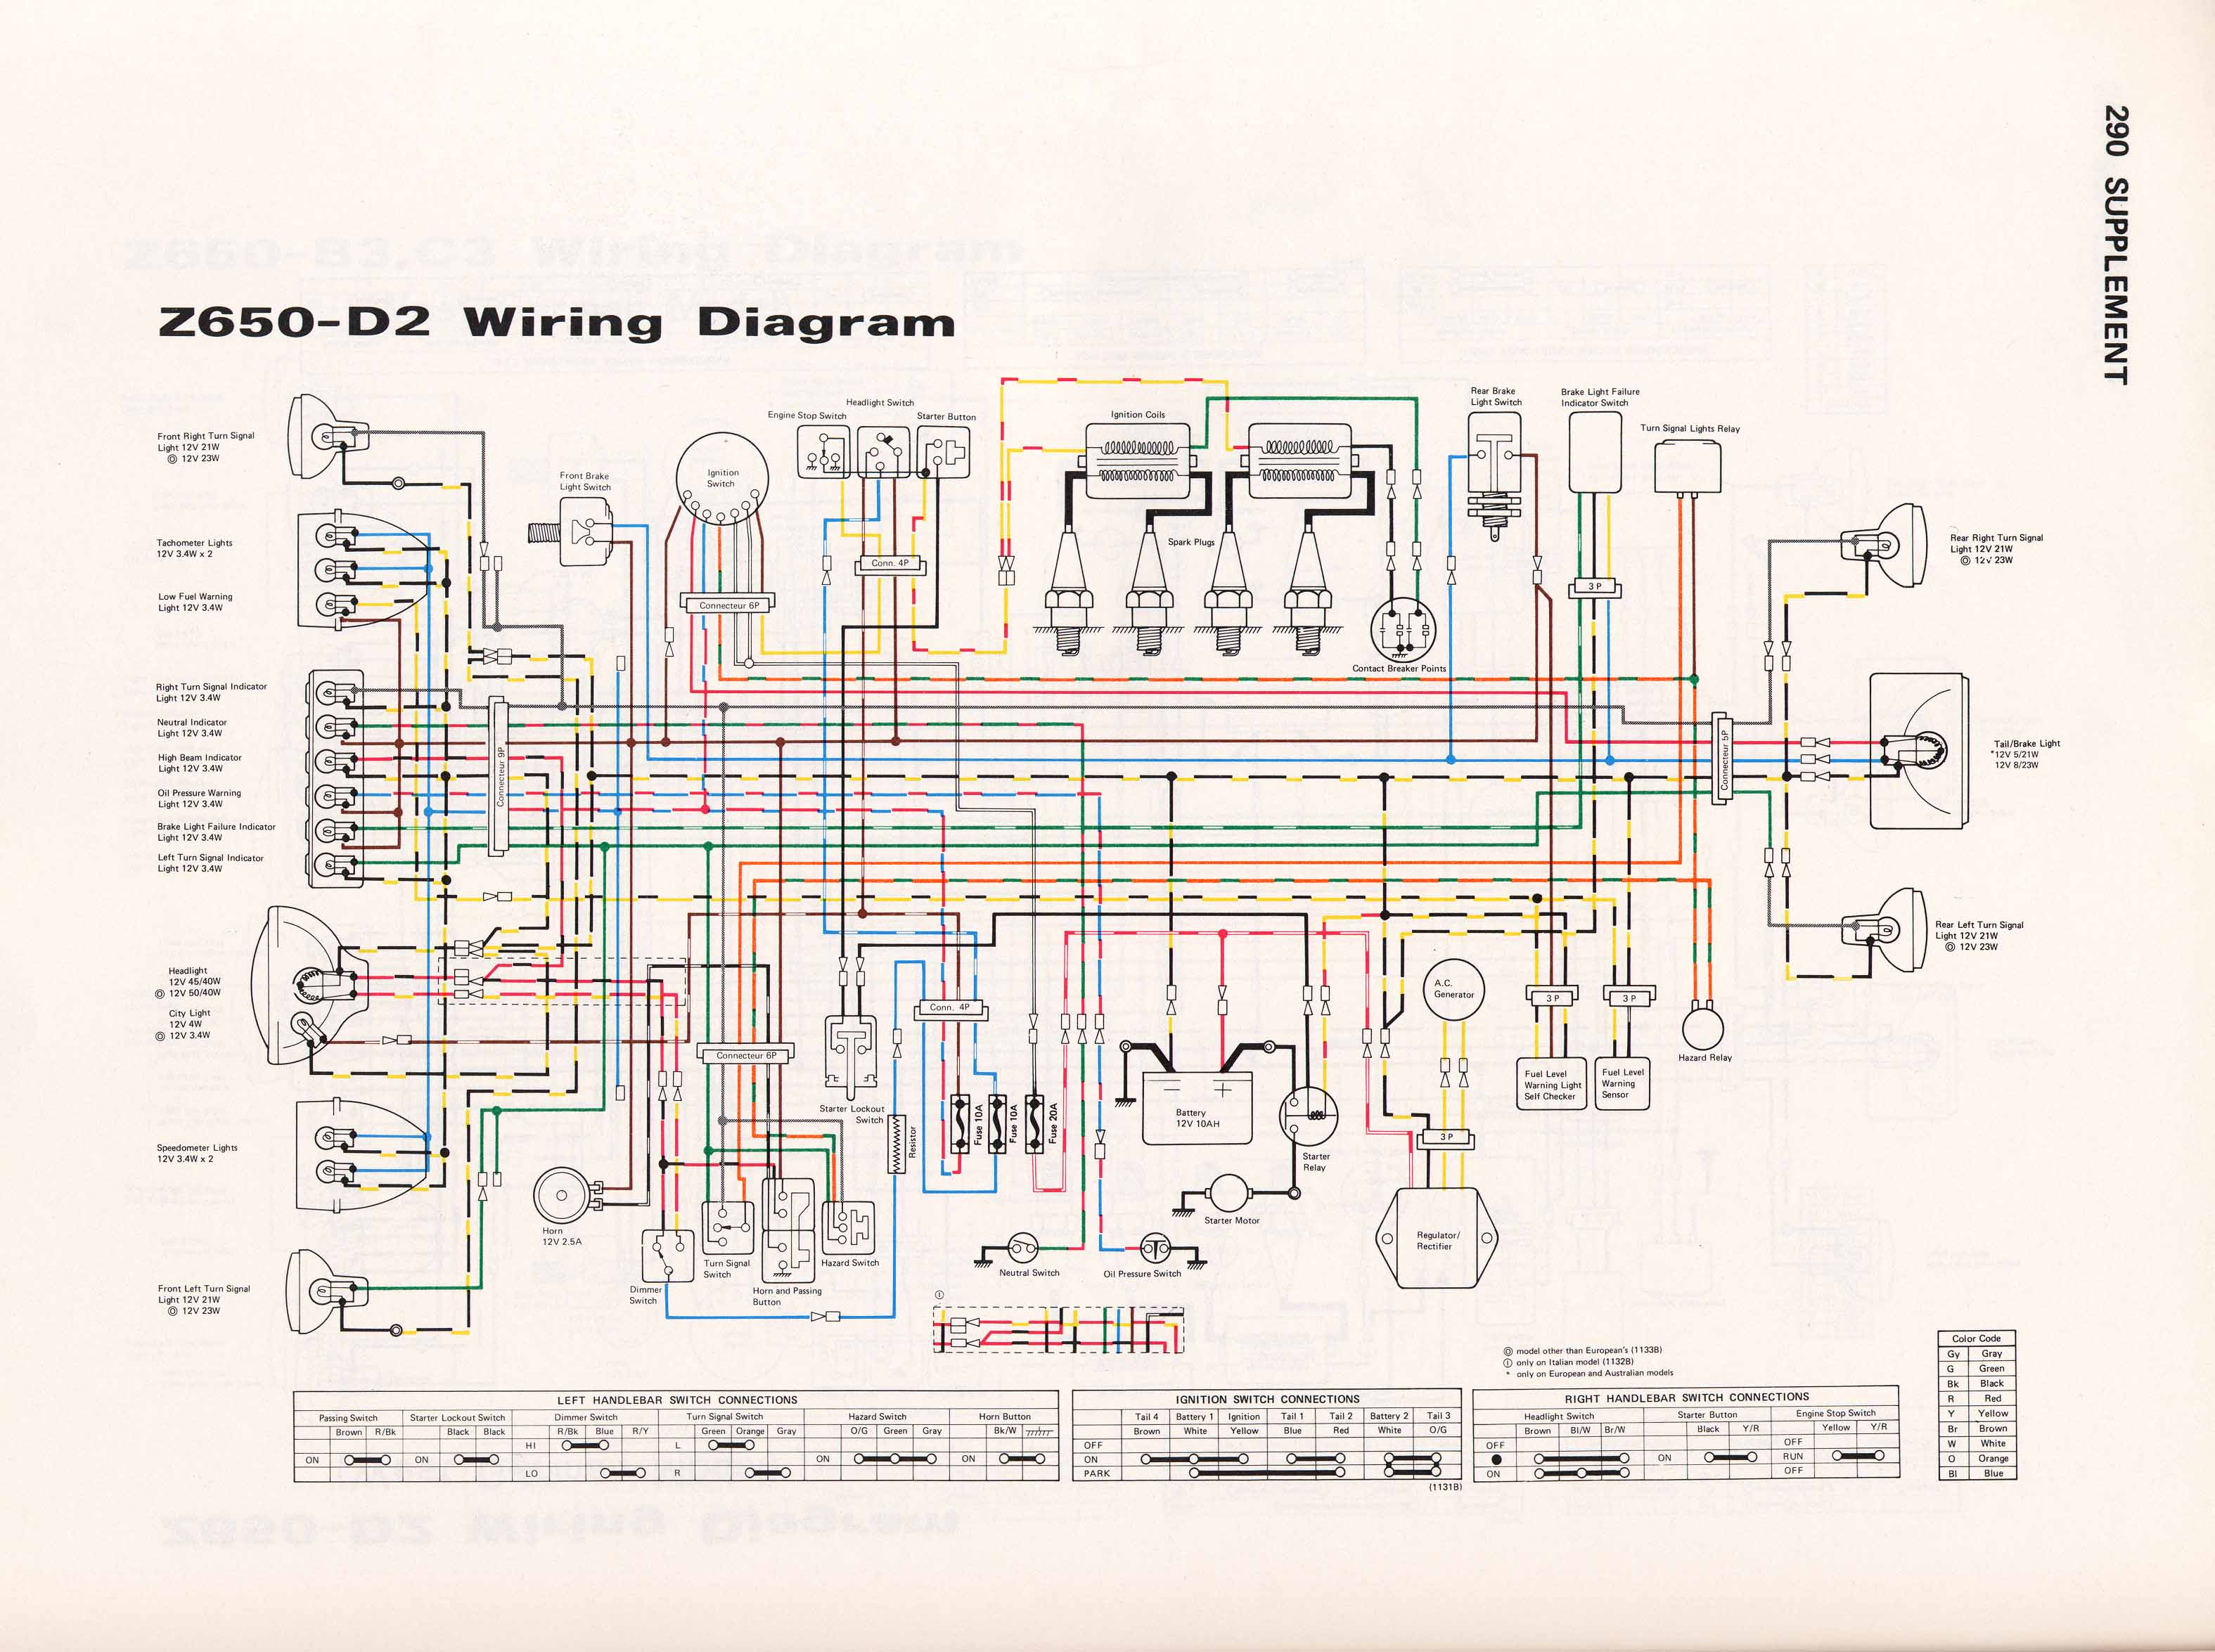 1978 z650 wiring diagram stihl 015 parts kz650 info diagrams